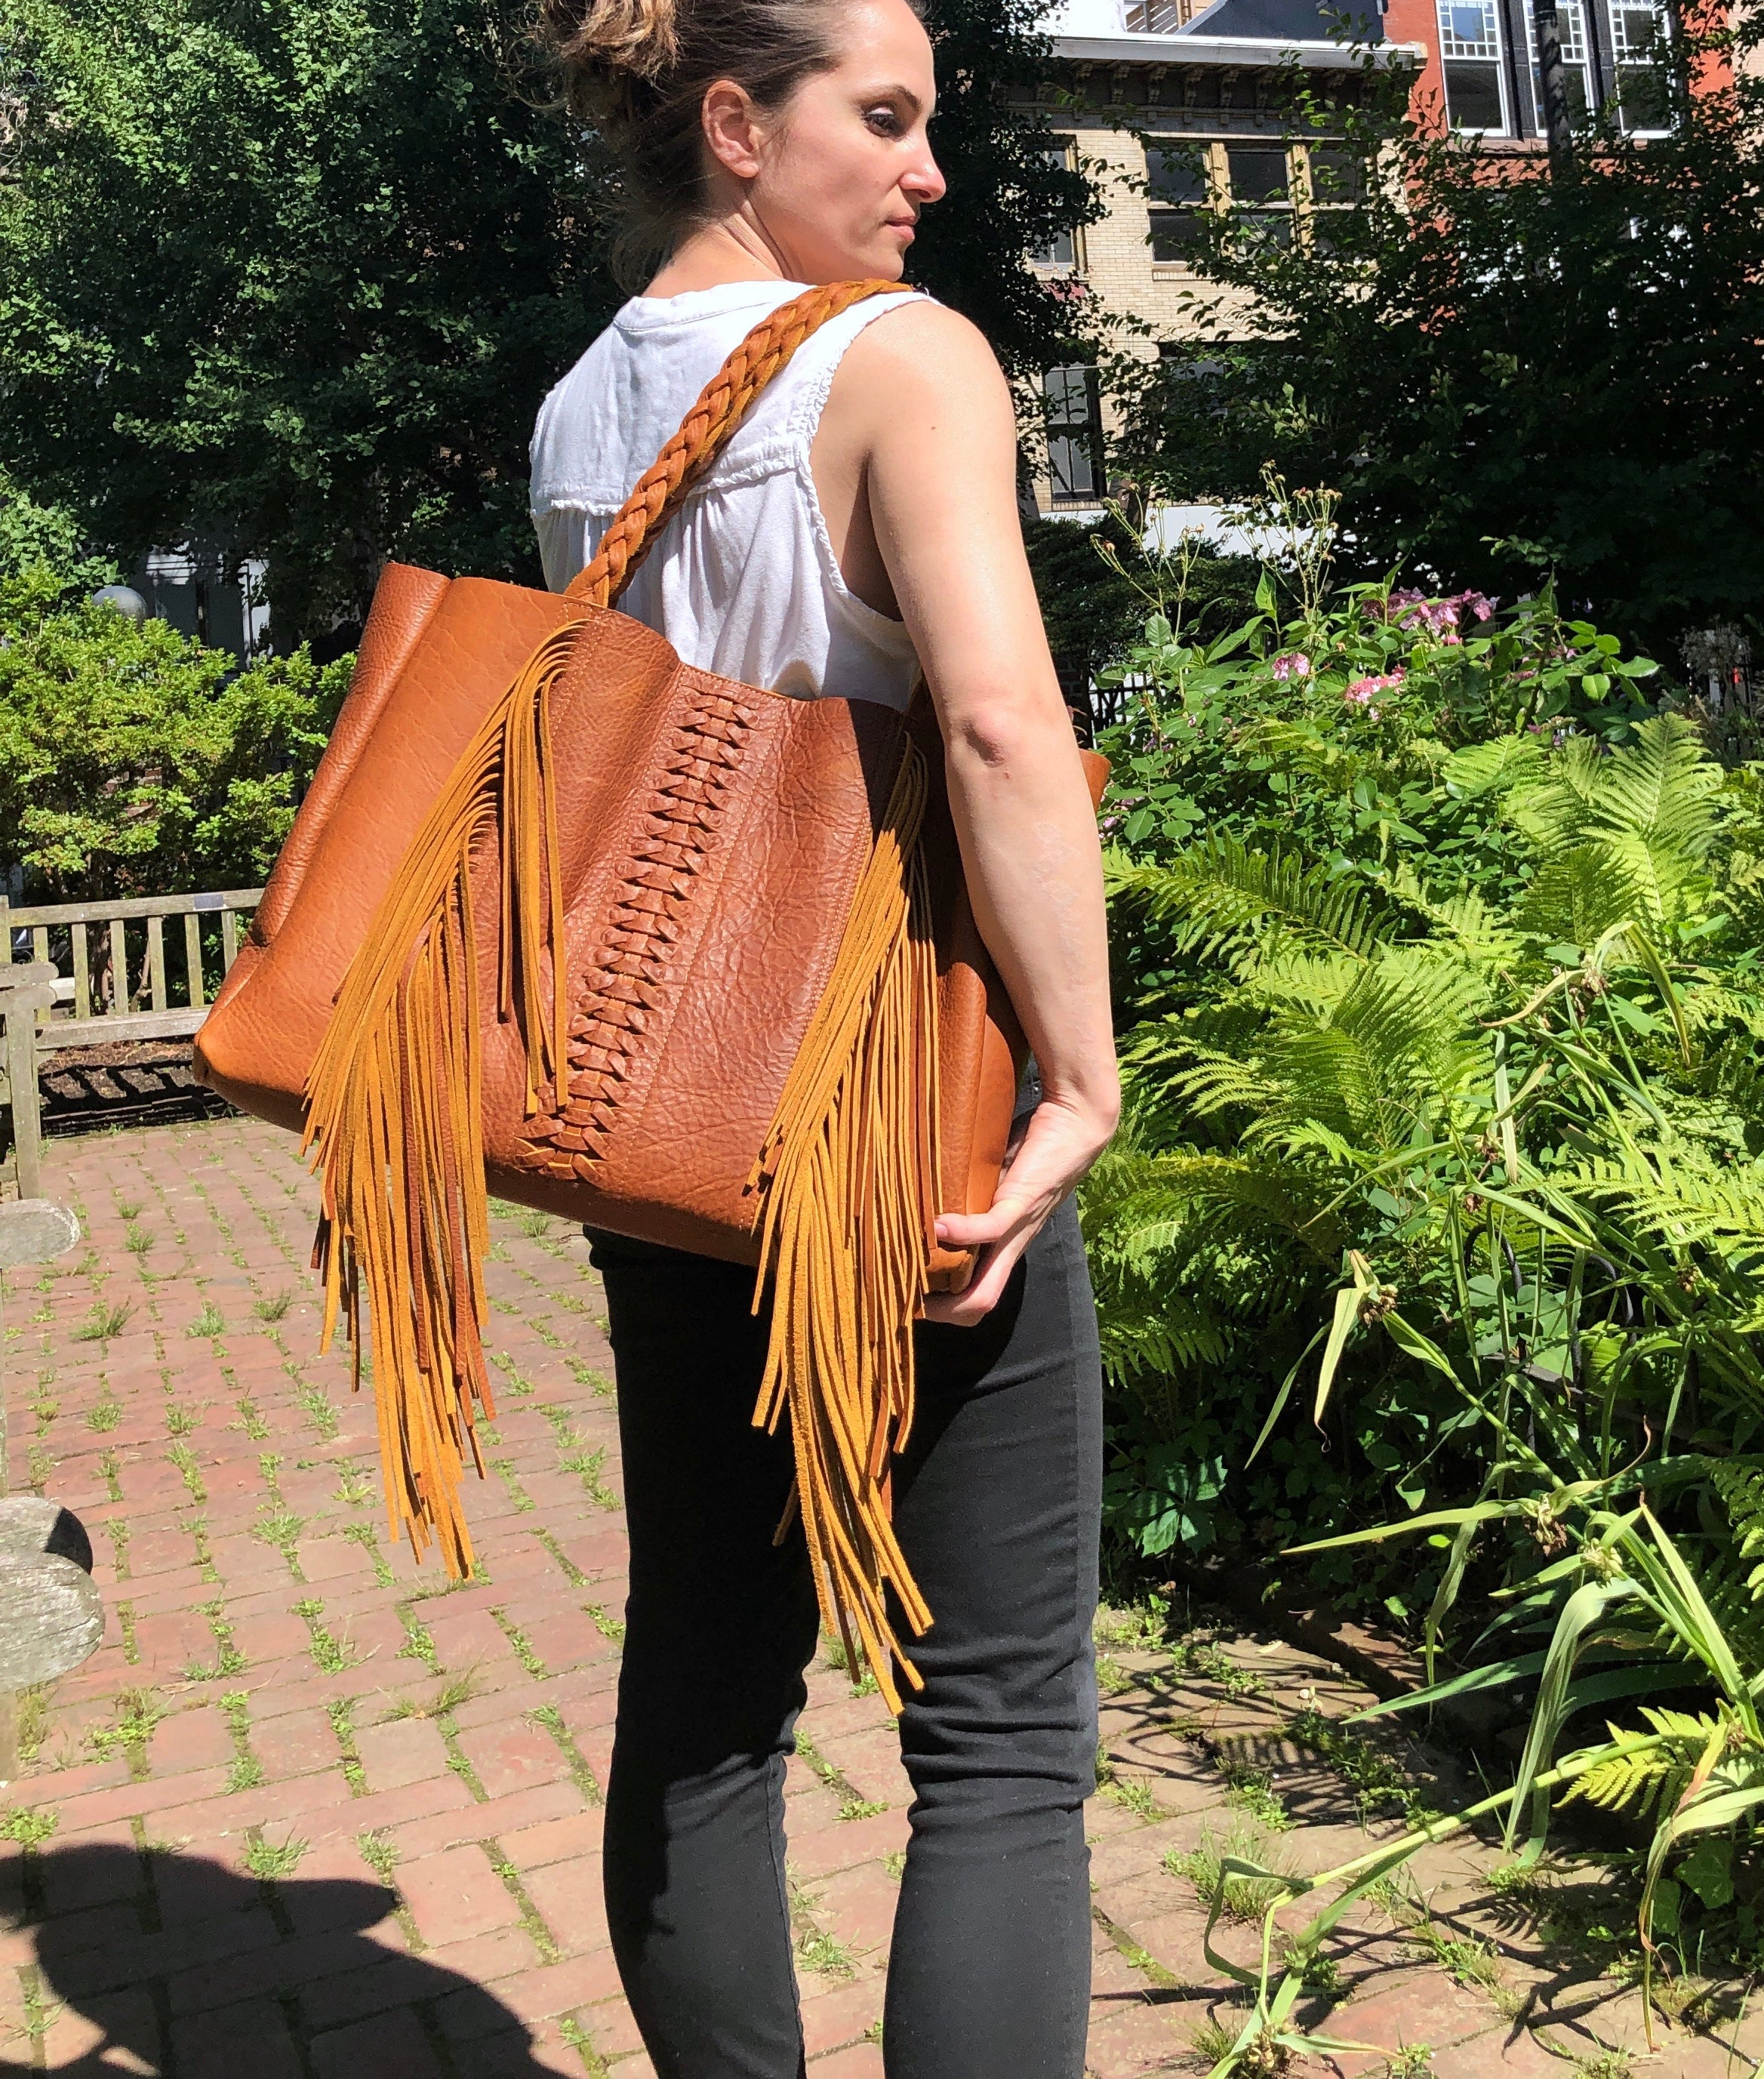 Cognac, boho chic braided leather bag